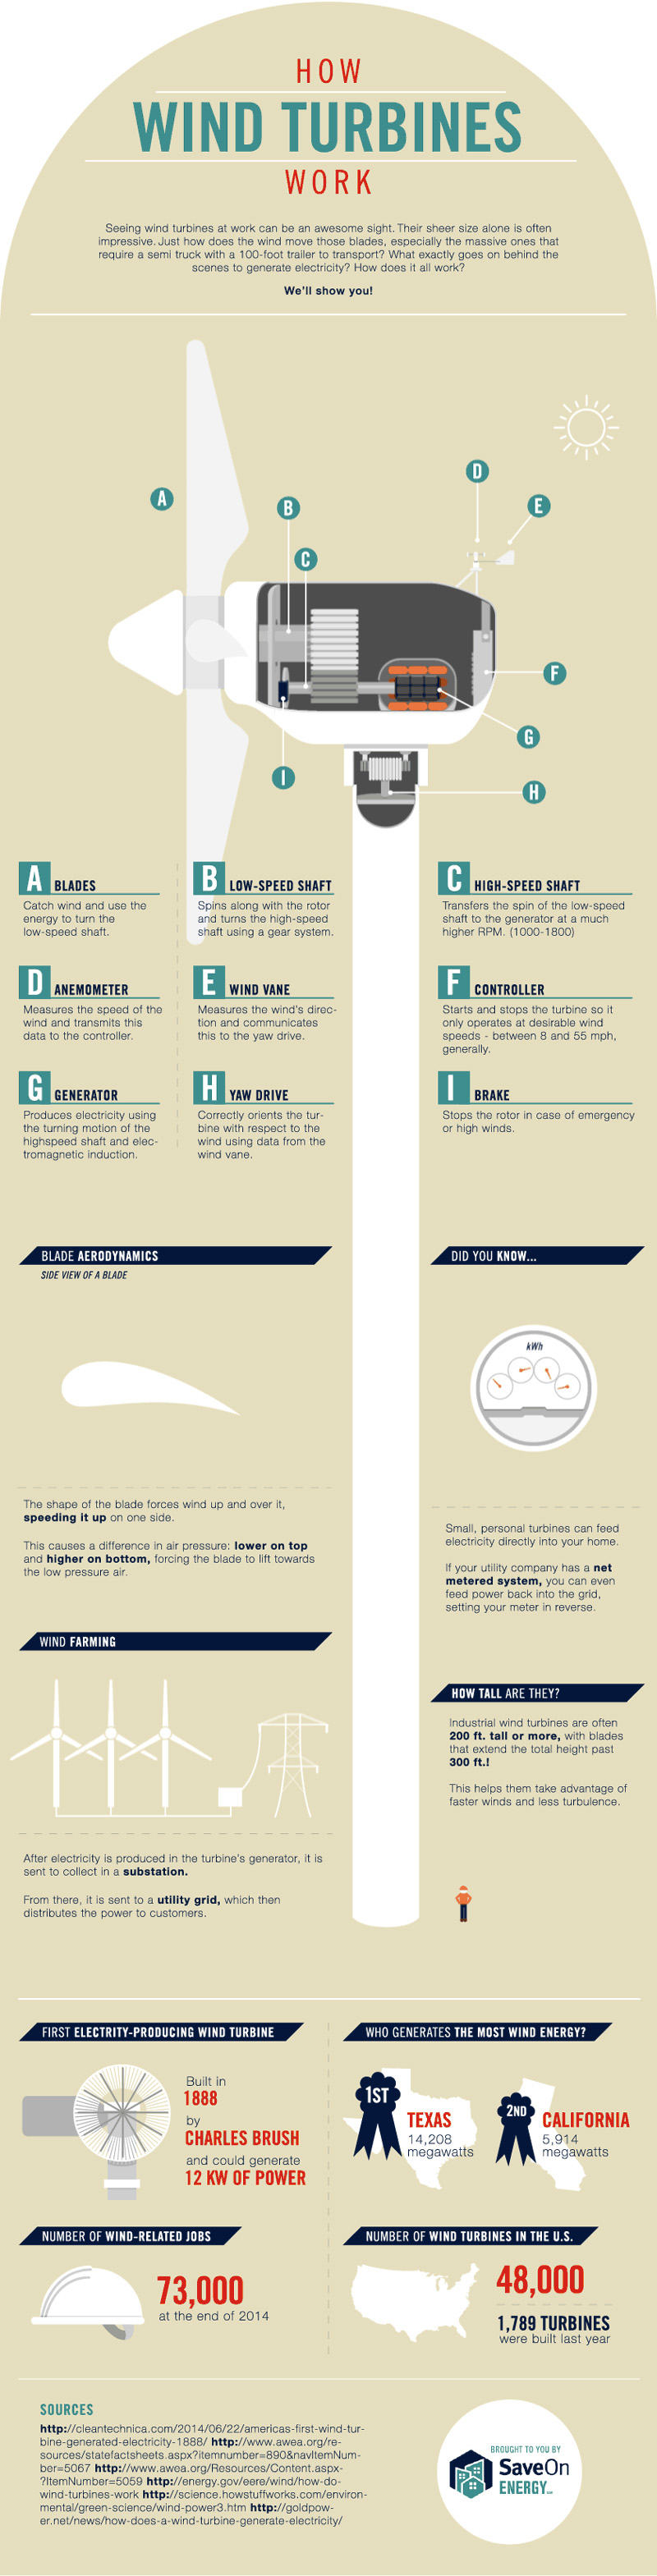 wind power, wind turbines, how turbines work, how wind turbines work, wind power infographic, infographic, green energy, green power, alternative energy, renewable energy, green energy infographic, how green power is producted